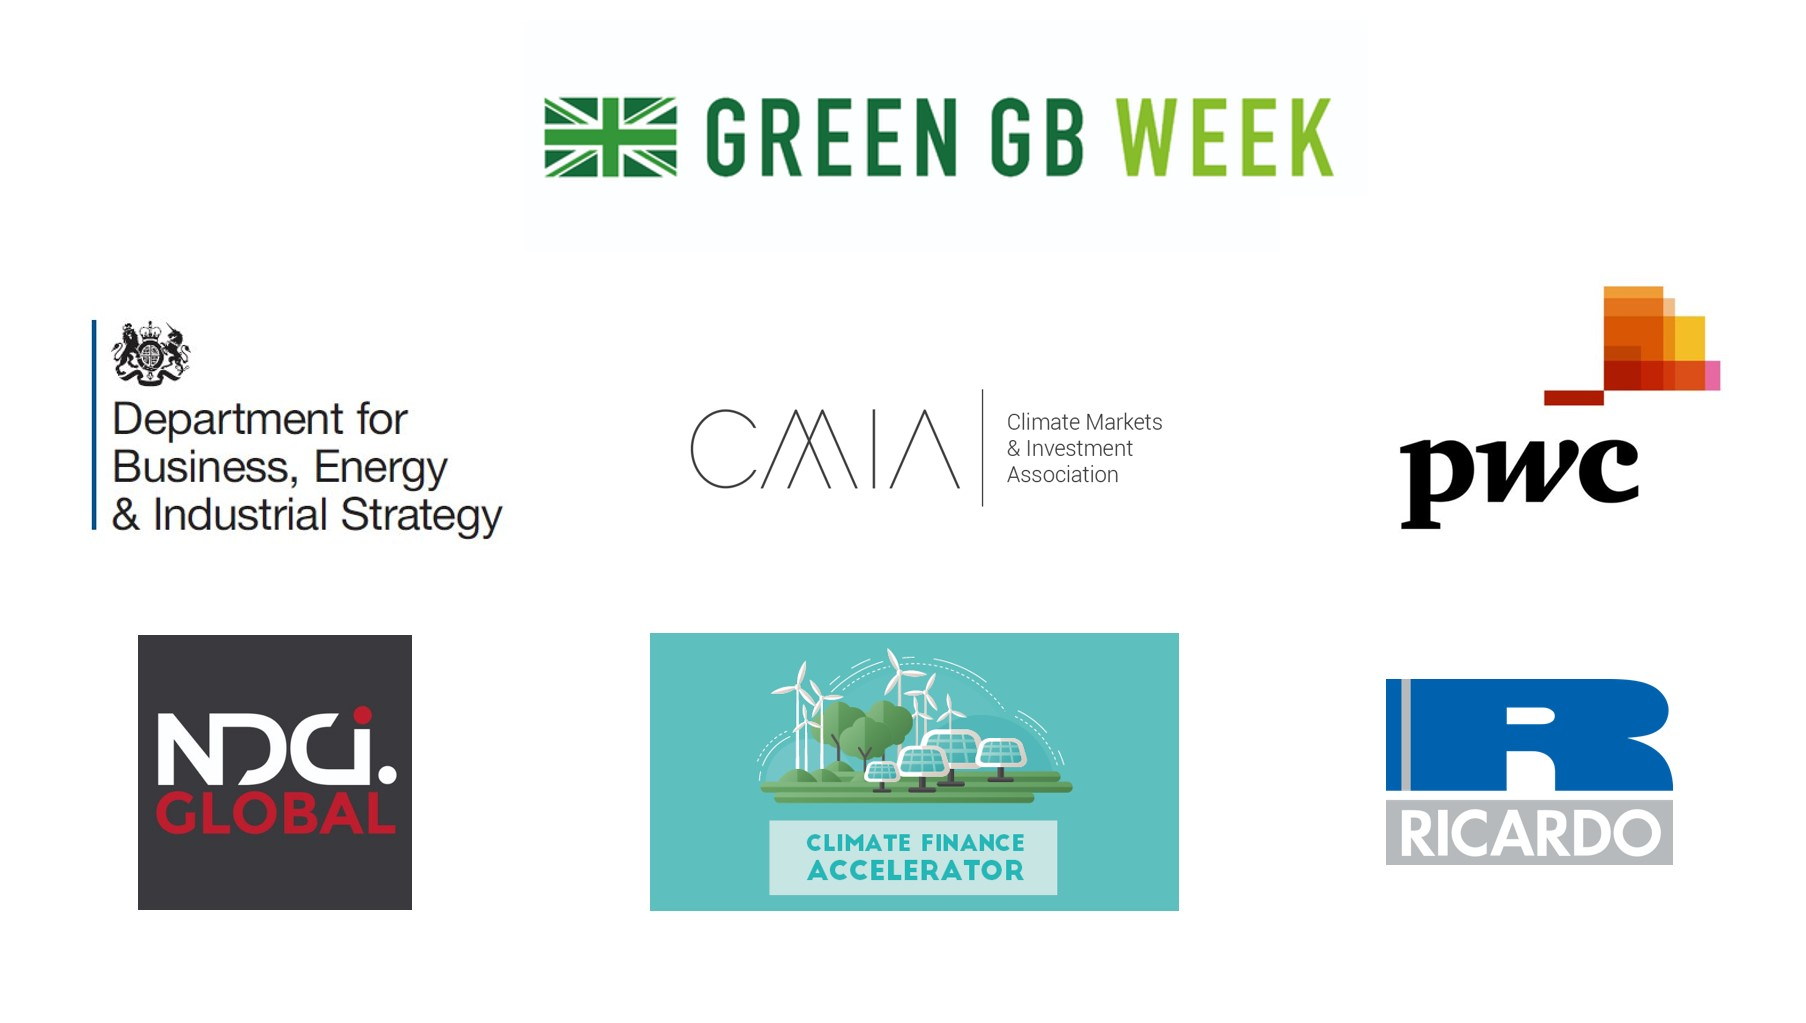 Logos of partners for the Accelerating Green Finance in Emerging Markets event